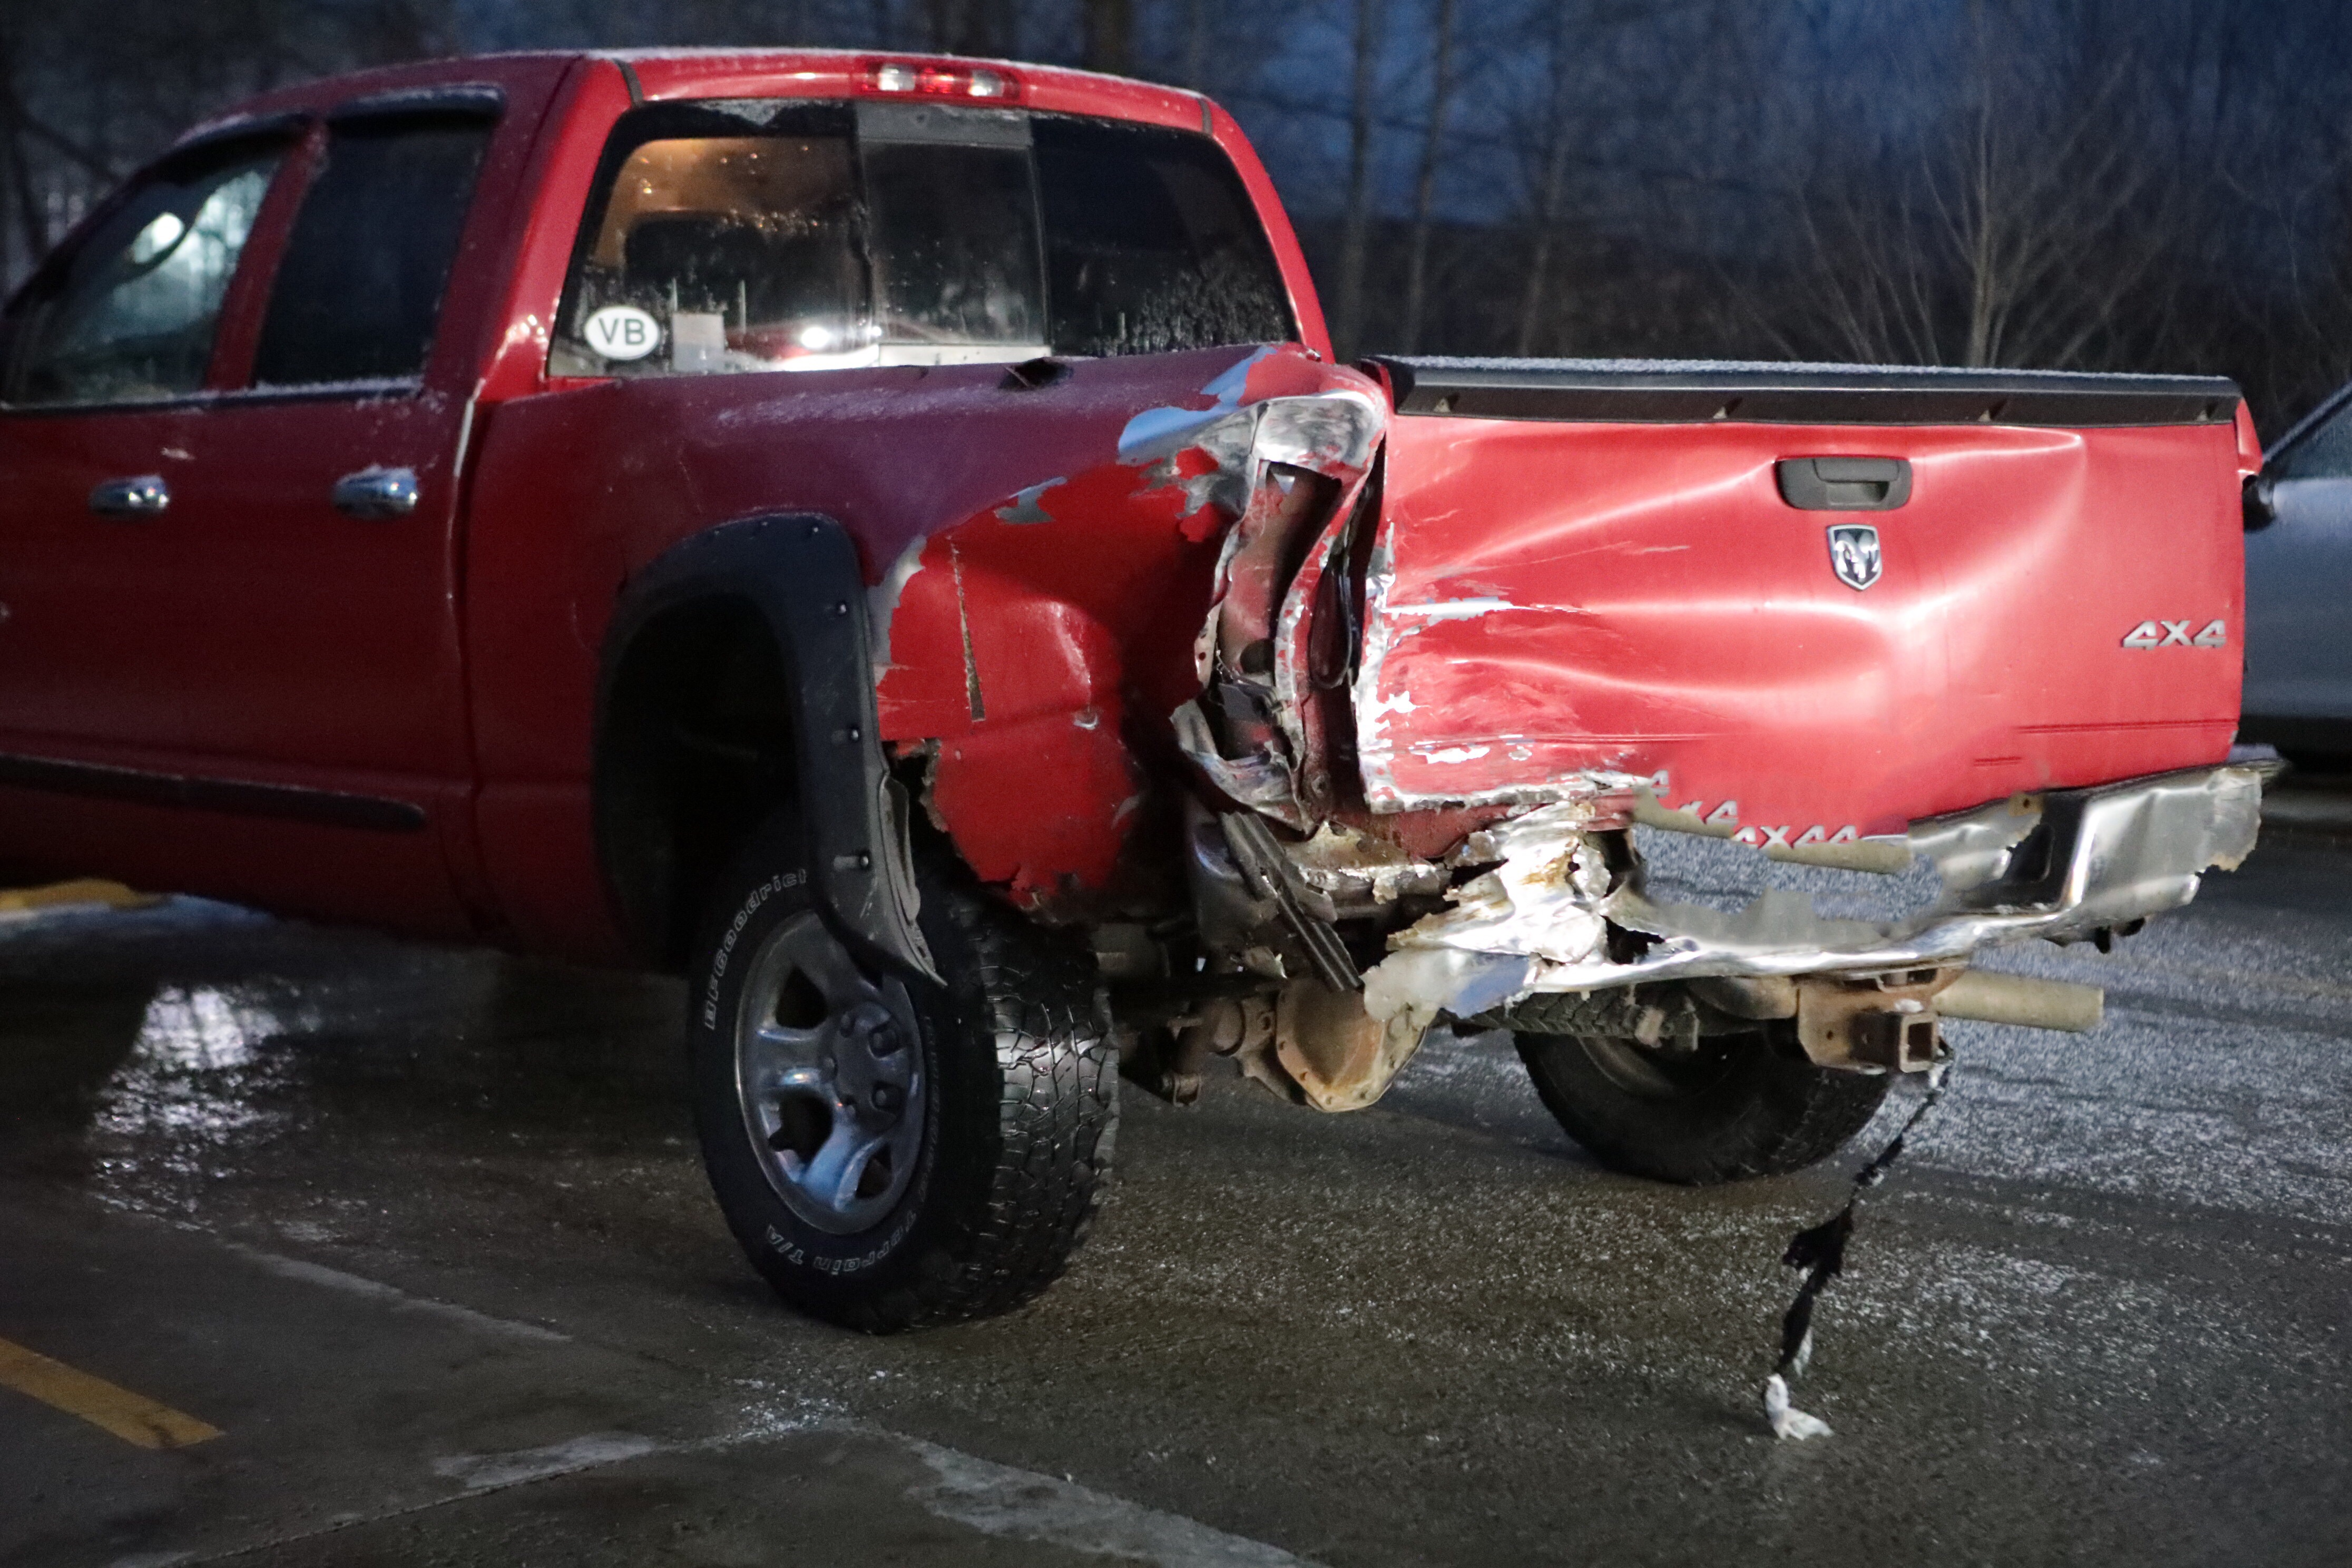 Icy Roads Lead to Multi-Vehicle Crash on I-80 Clarion River Bridge